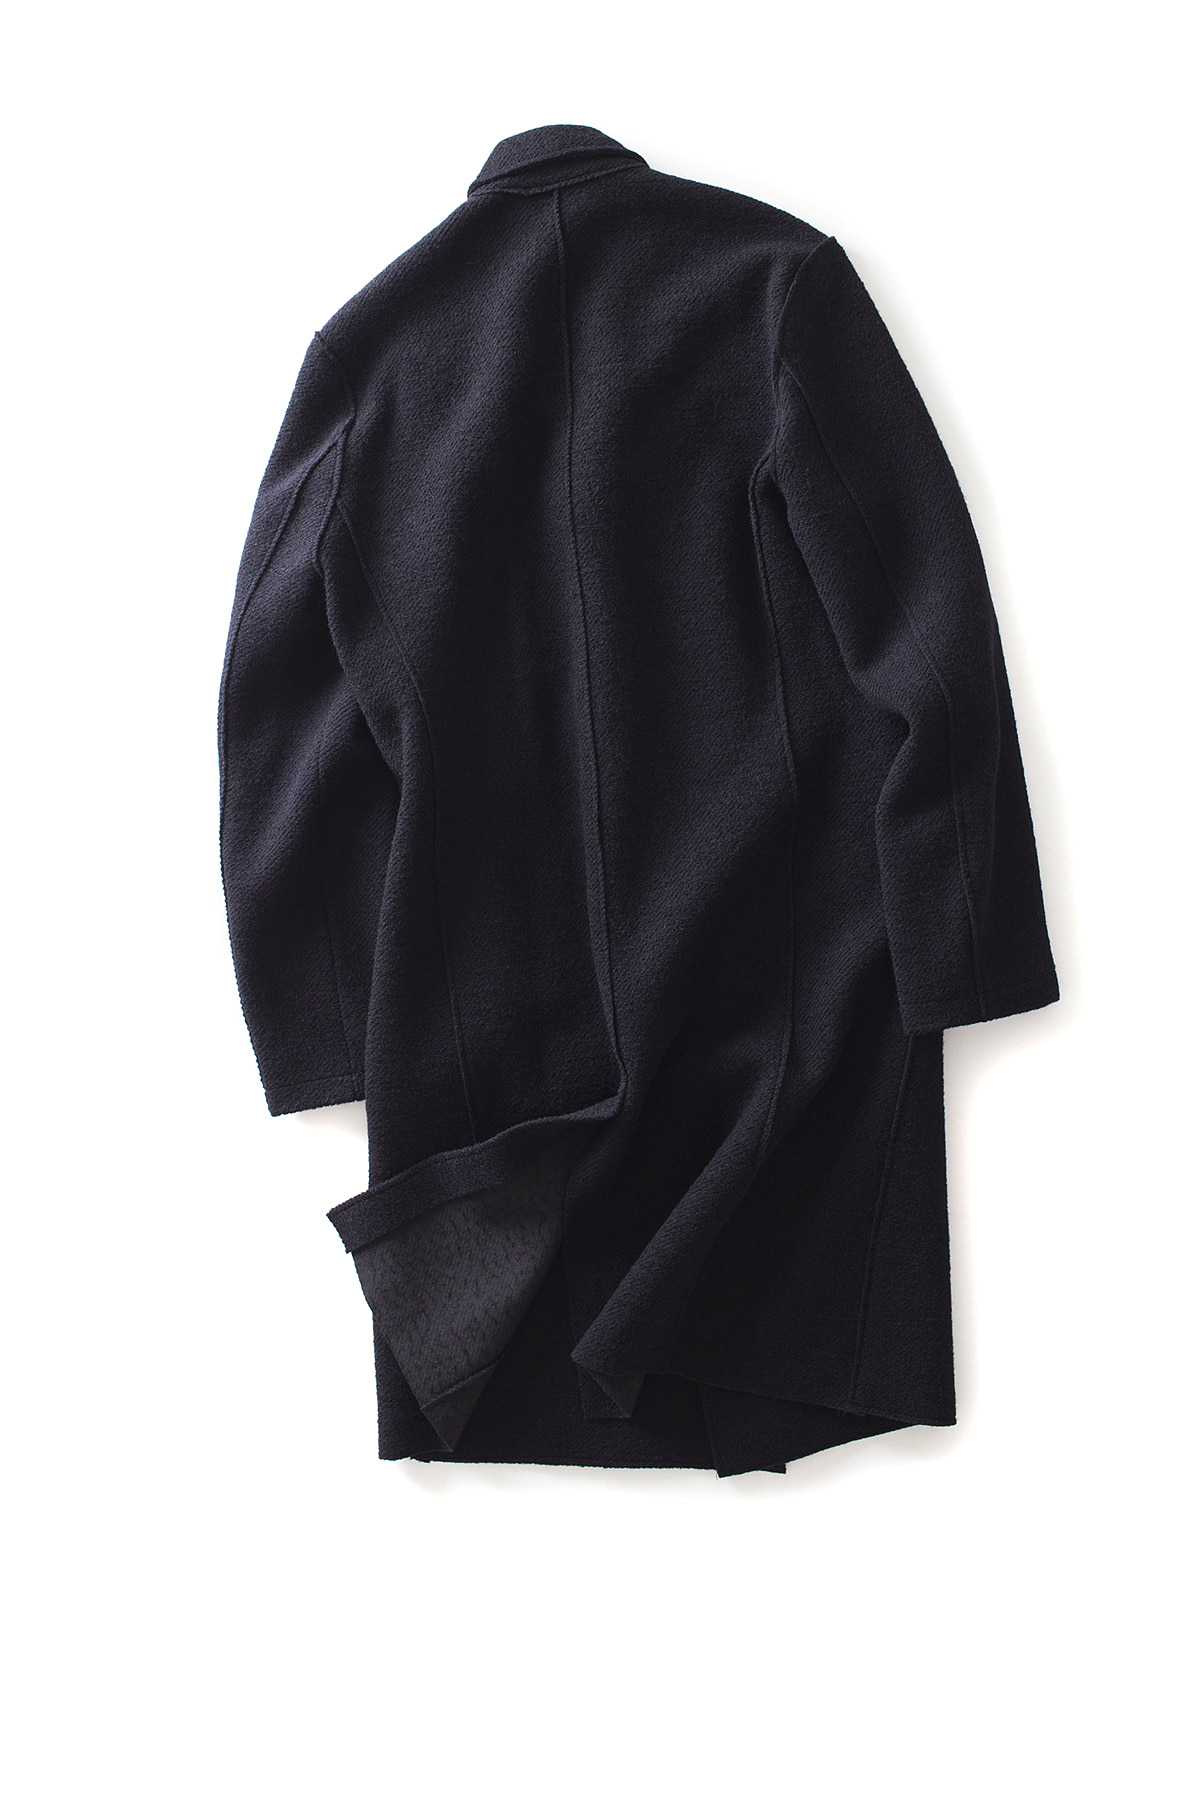 IKHENATON : Normal Coat (Black)